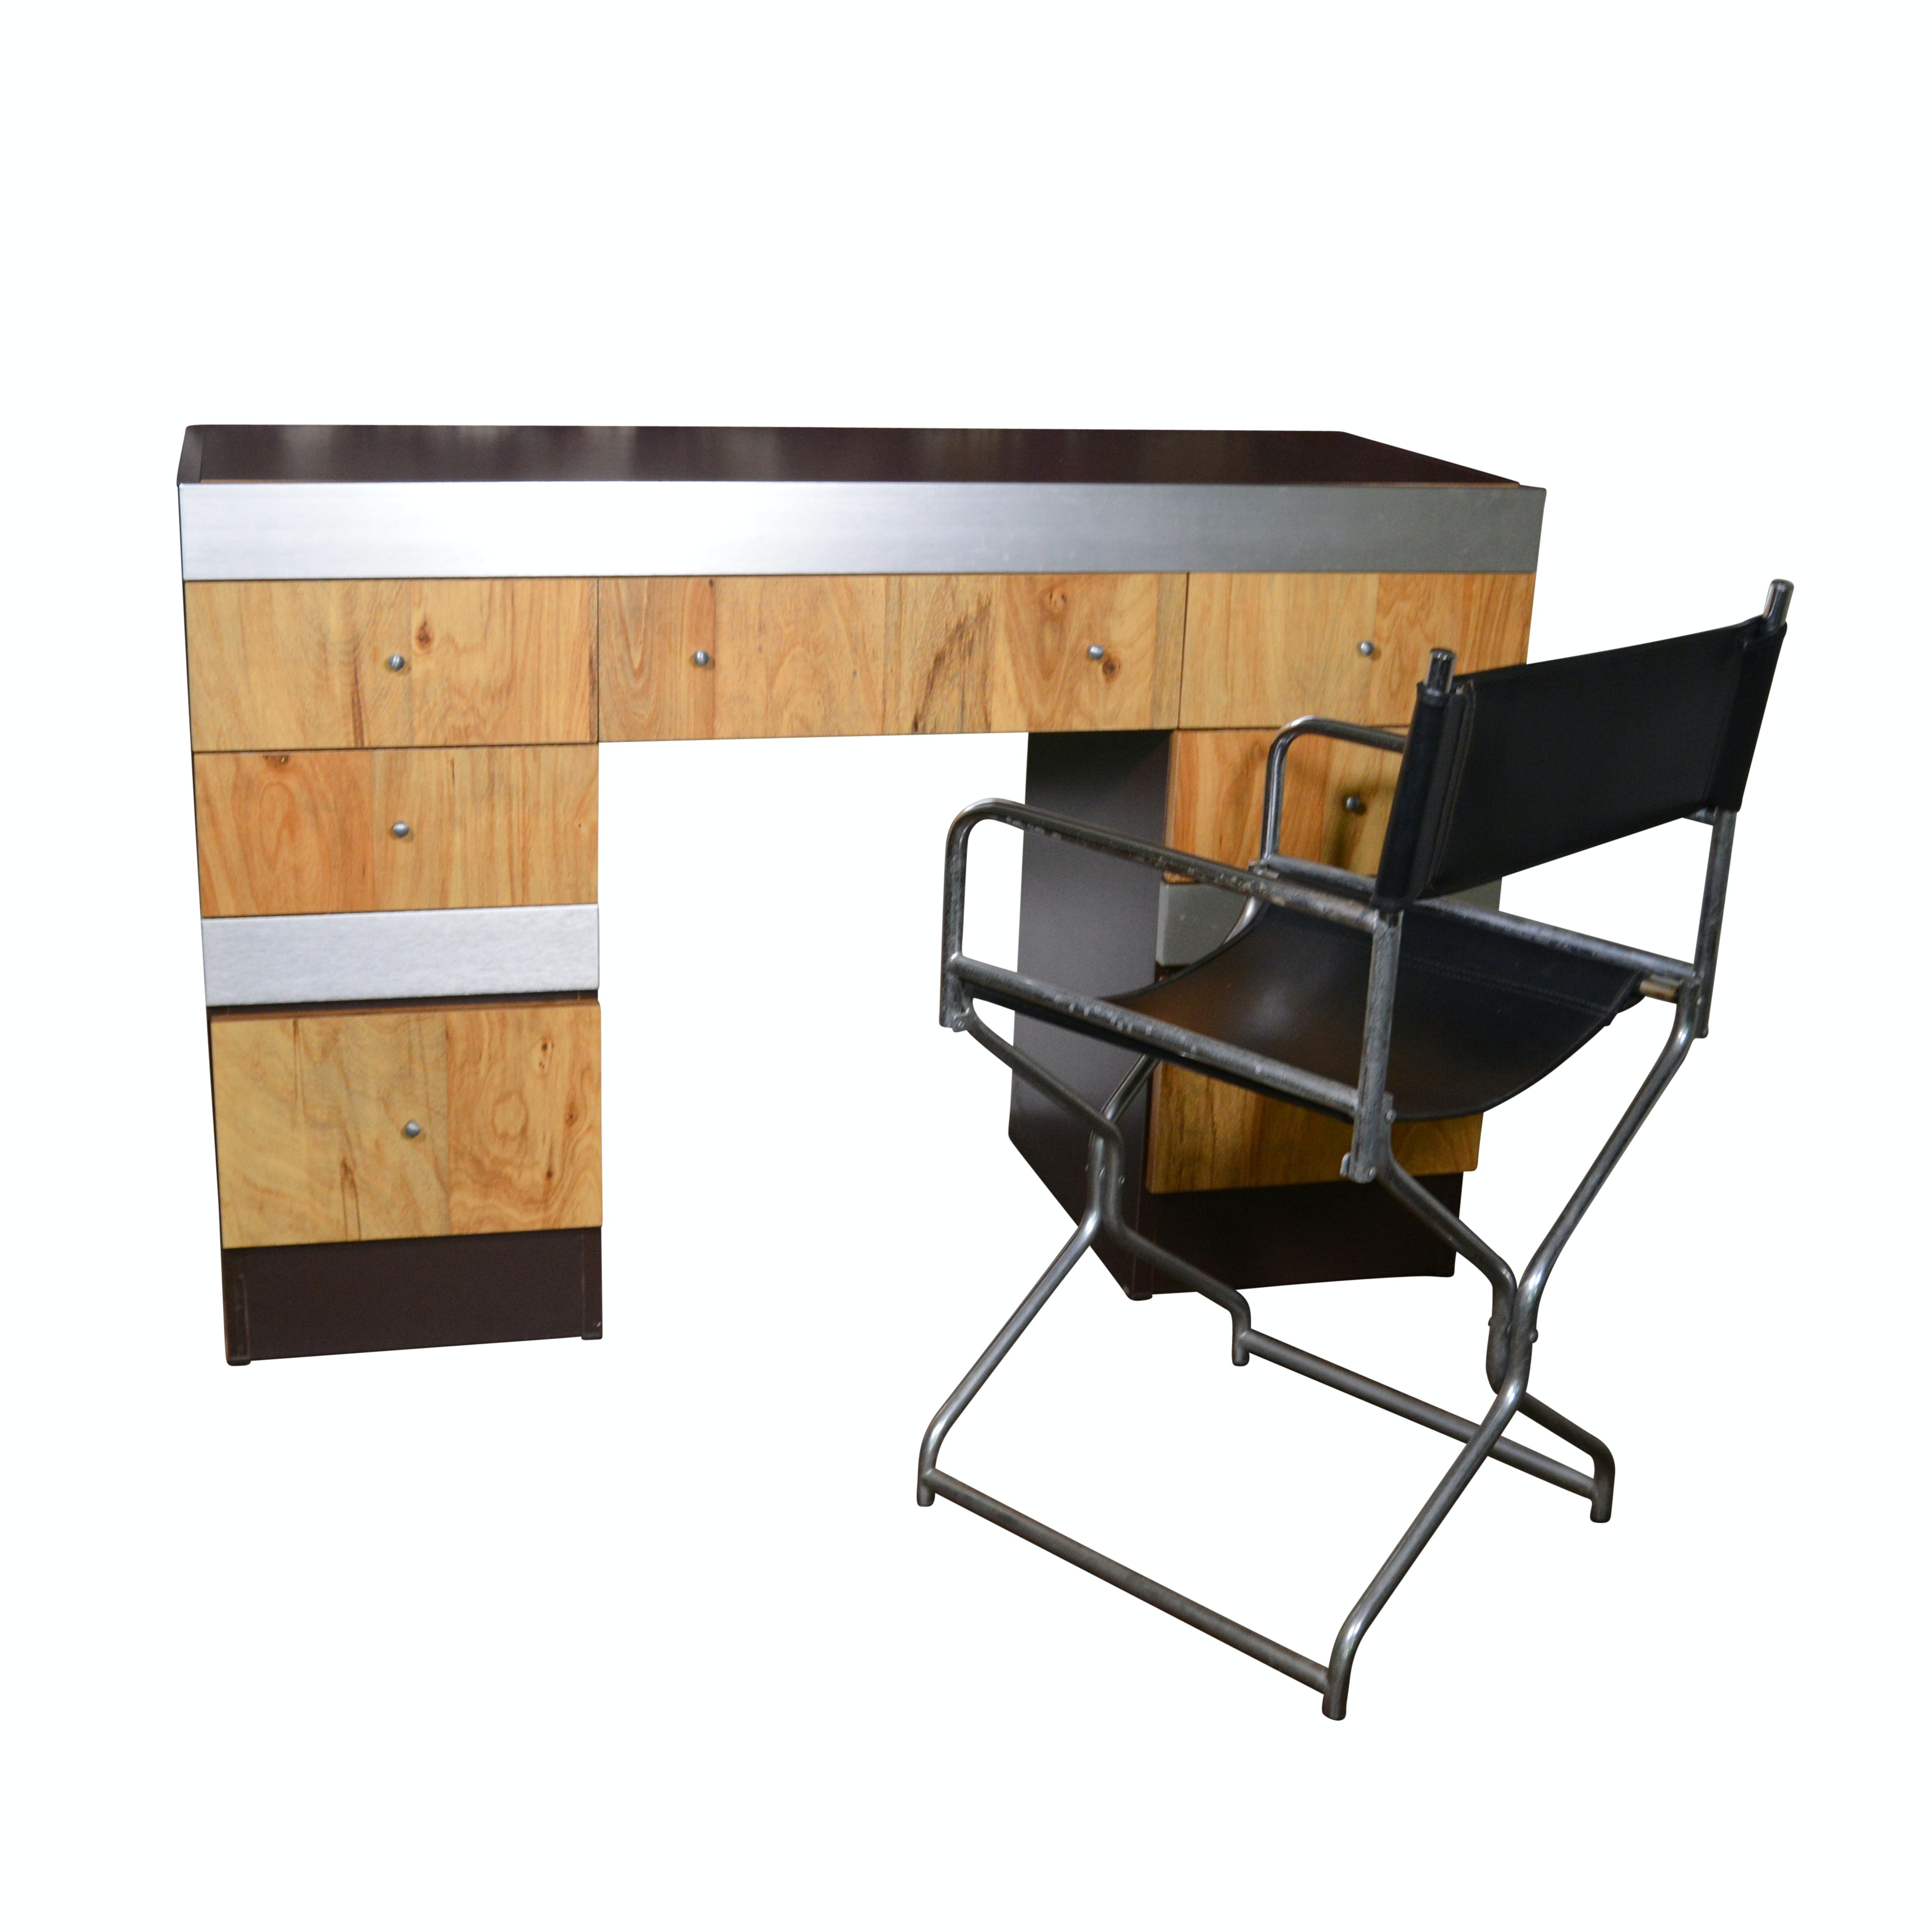 Contemporary Figured Birch and Metal Desk and Director's Chair, 20th Century